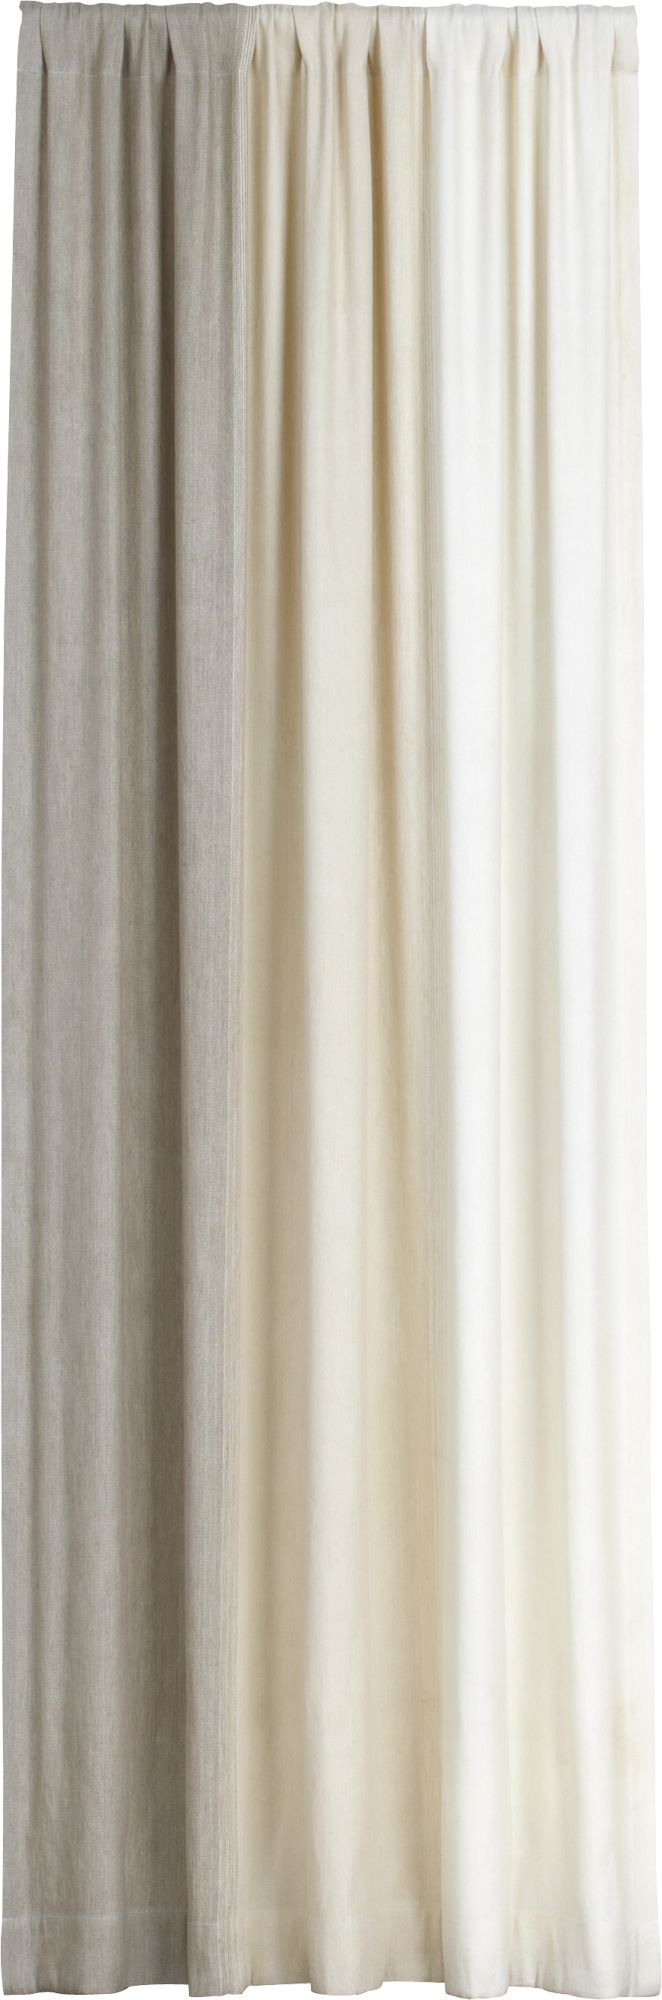 Master bedroom curtains  Curtains for the master bedroom  house inspiration  Pinterest